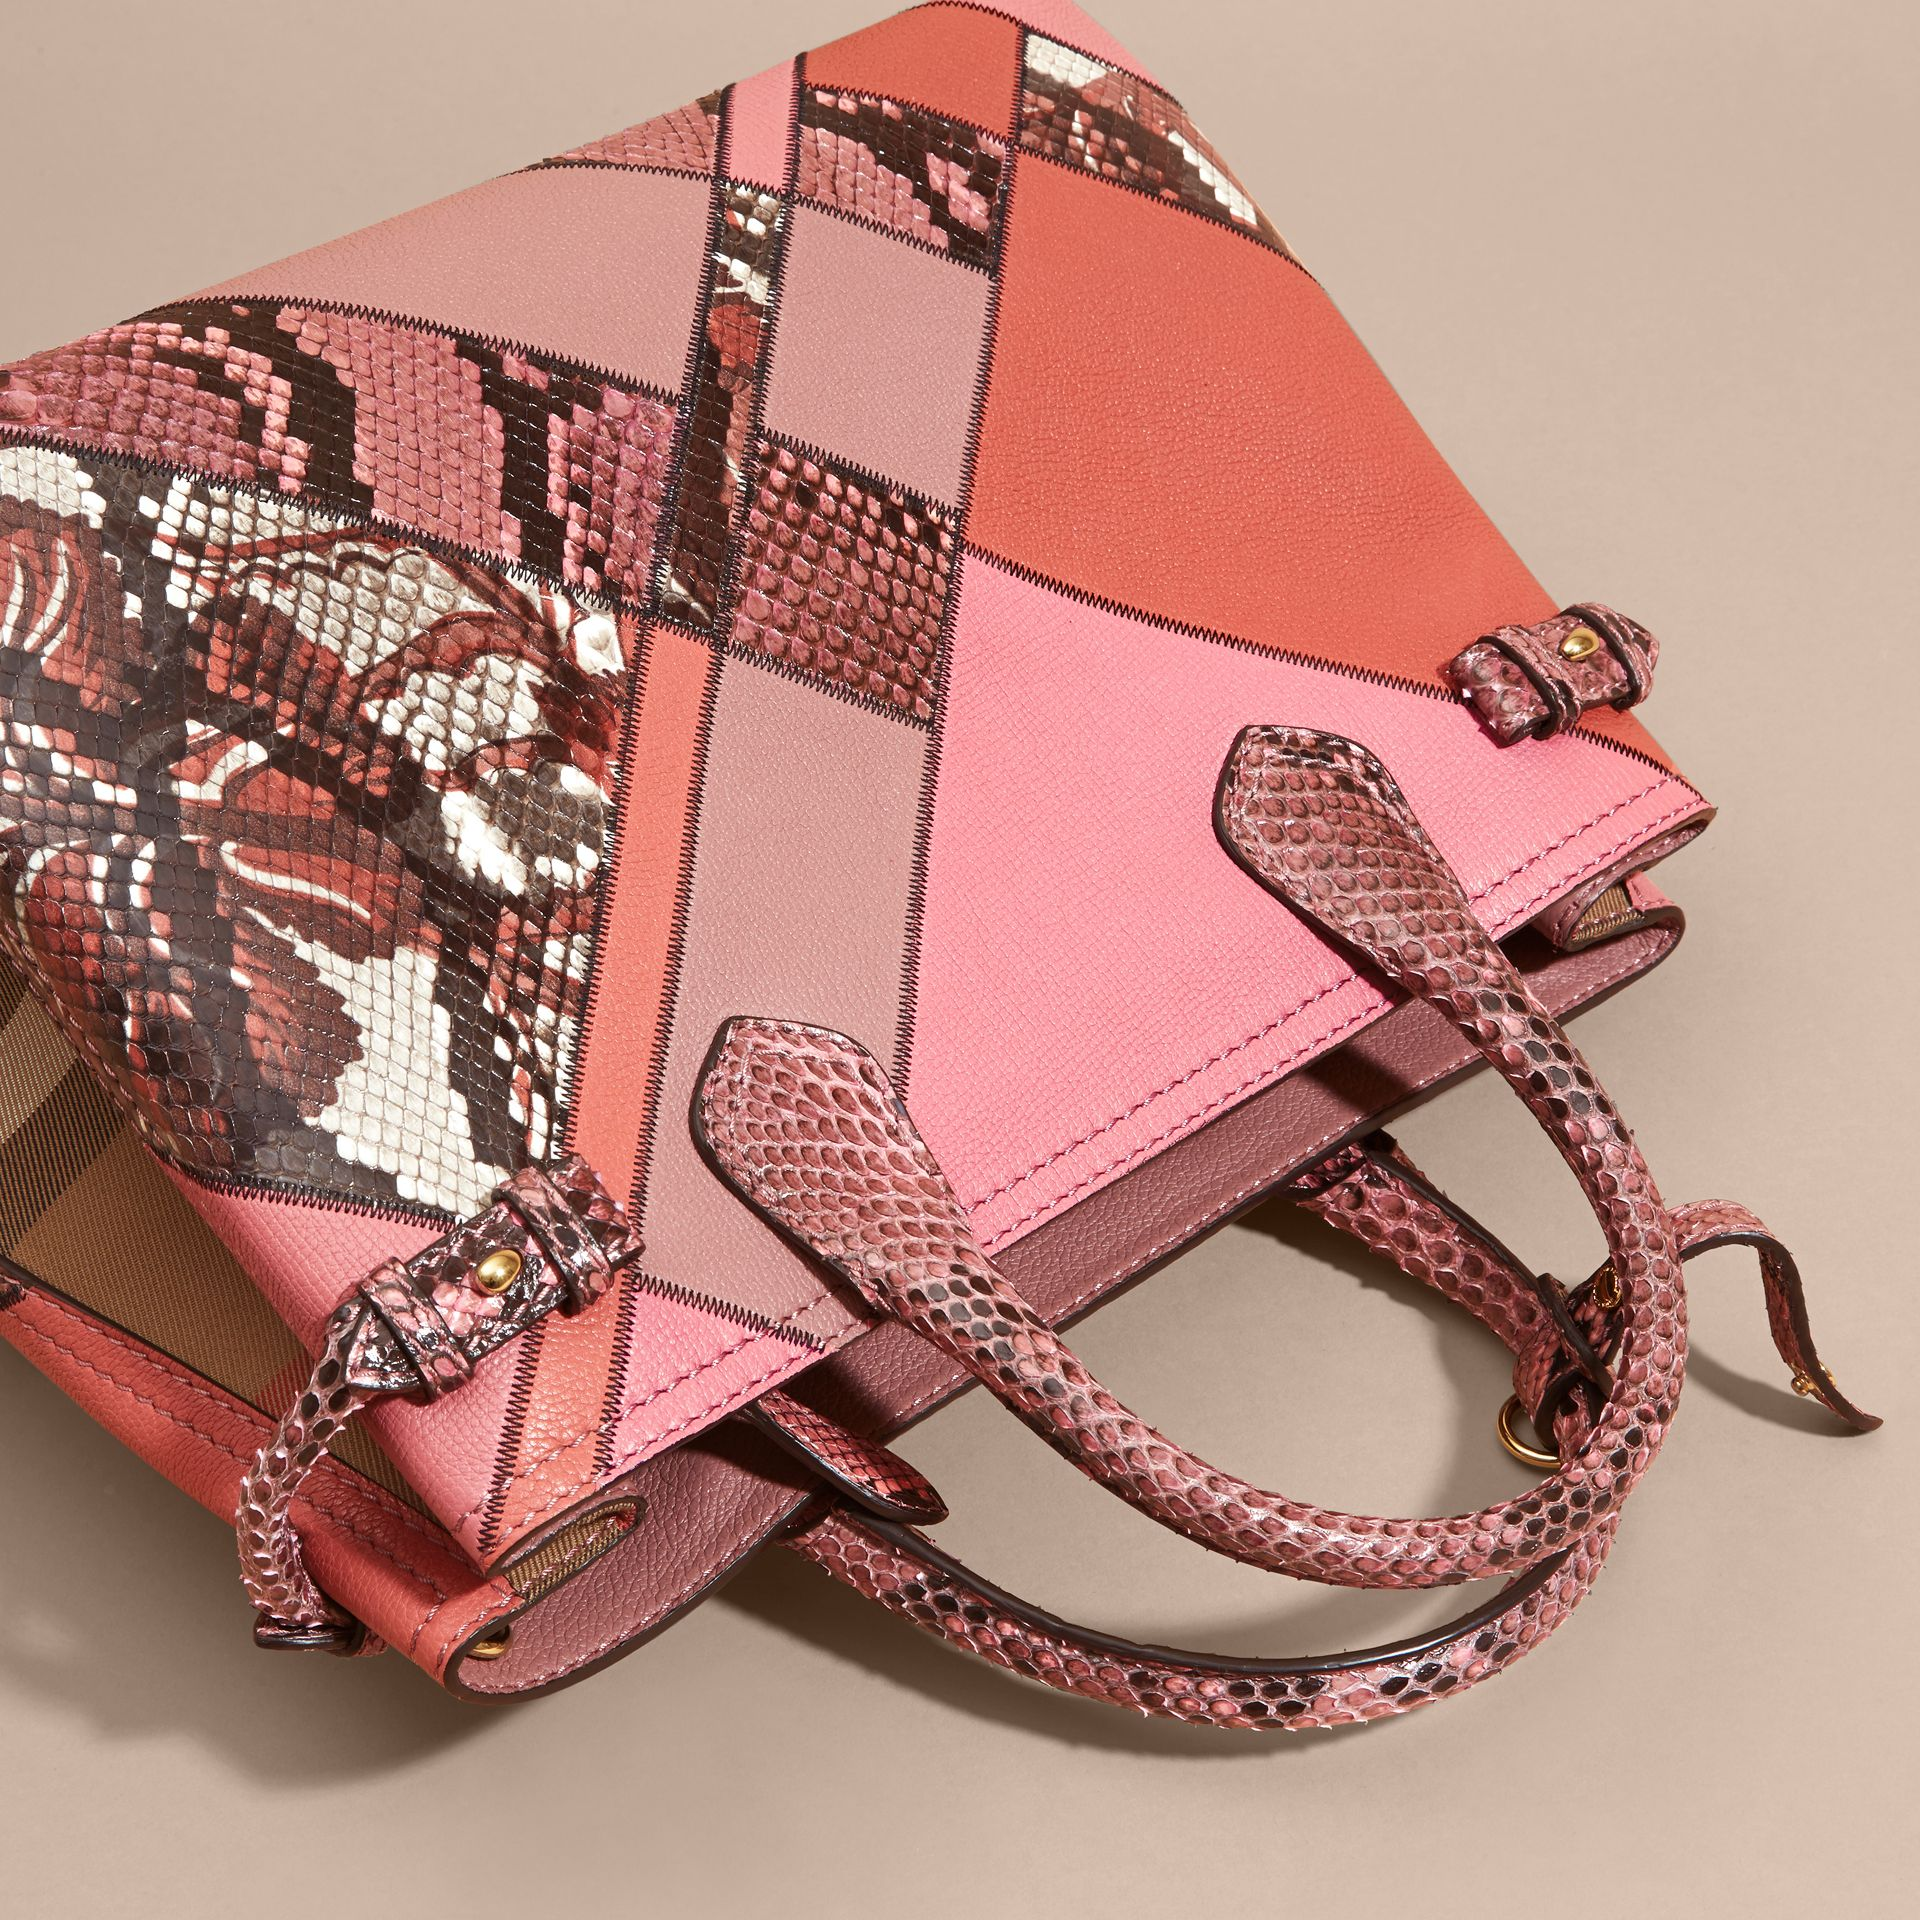 Sac The Banner medium en cuir et python façon patchwork (Rose Cendré) - Femme | Burberry - photo de la galerie 9